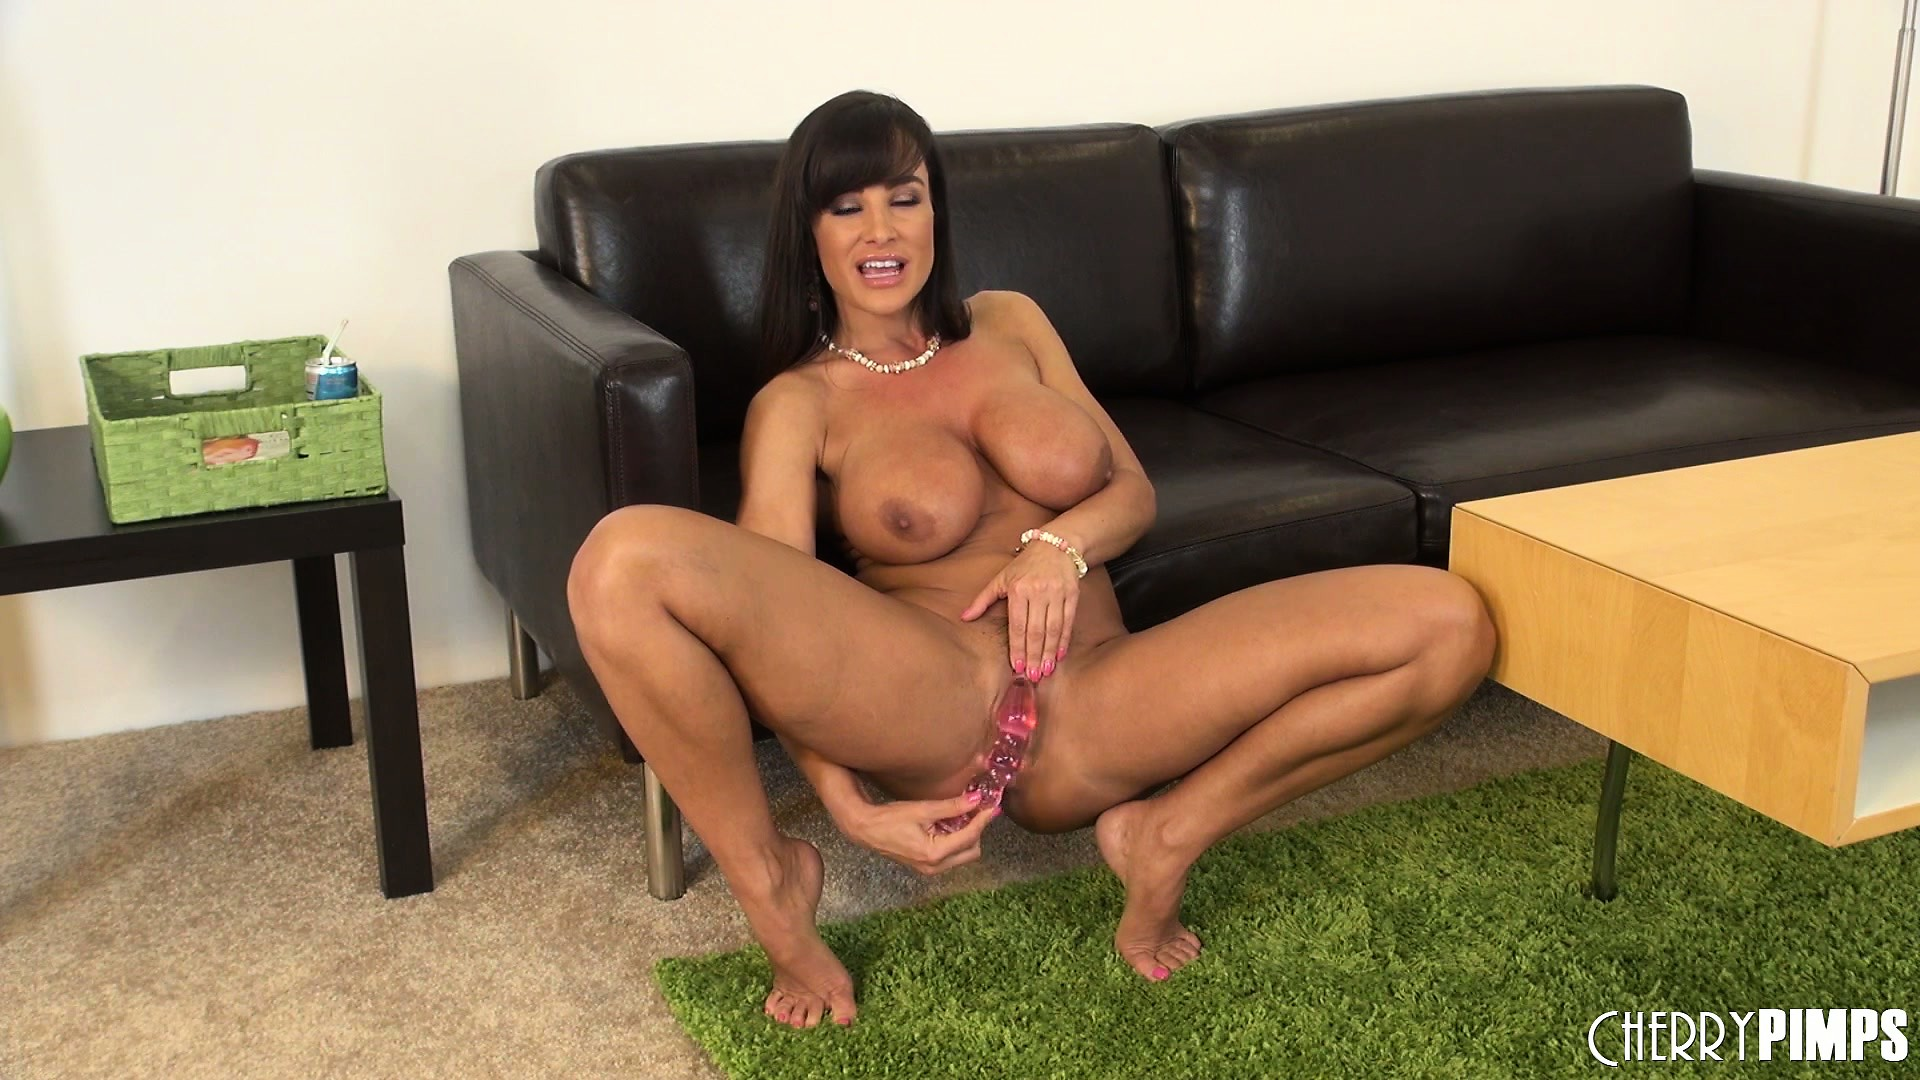 free high defenition mobile porn video - lisa ann squats down and